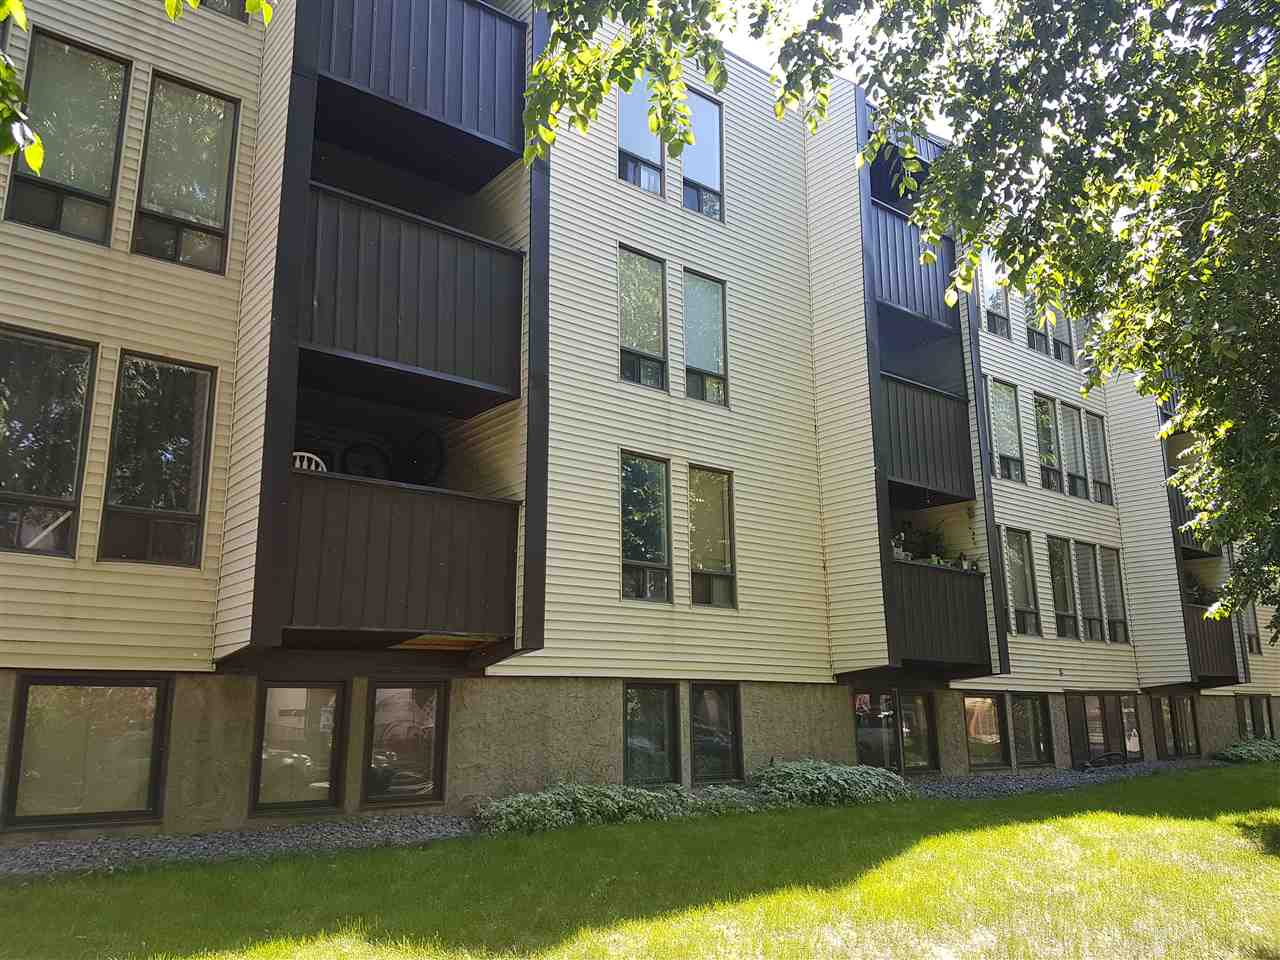 Live Downtown! Great value @ $79,900. This one bedroom 3rd floor unit has 624 sq ft with a updated white kitchen, a 4 piece bath with a soaker tub, a dining area, a large living room and den with built in counter tops. In suite laundry. Plus a covered balcony.